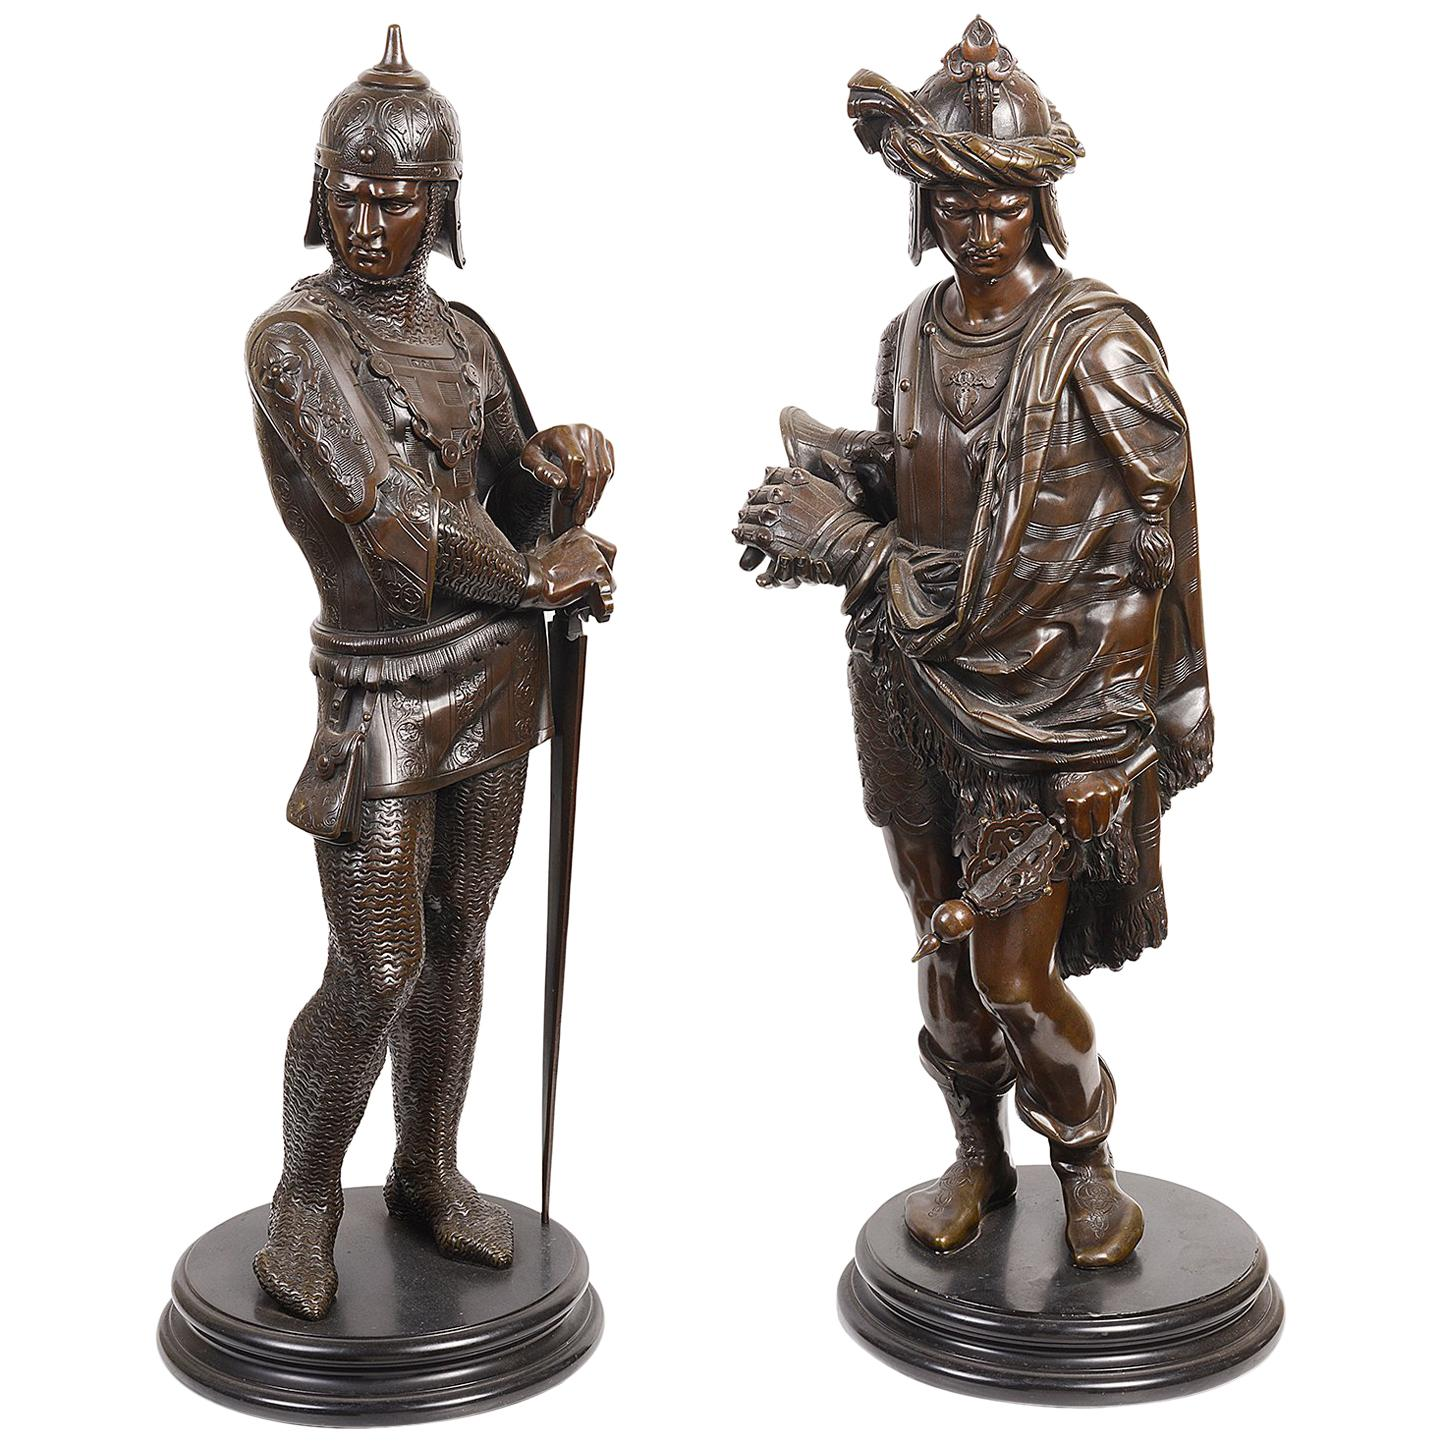 Pair of 19th Century French Bronze Statues of Knights